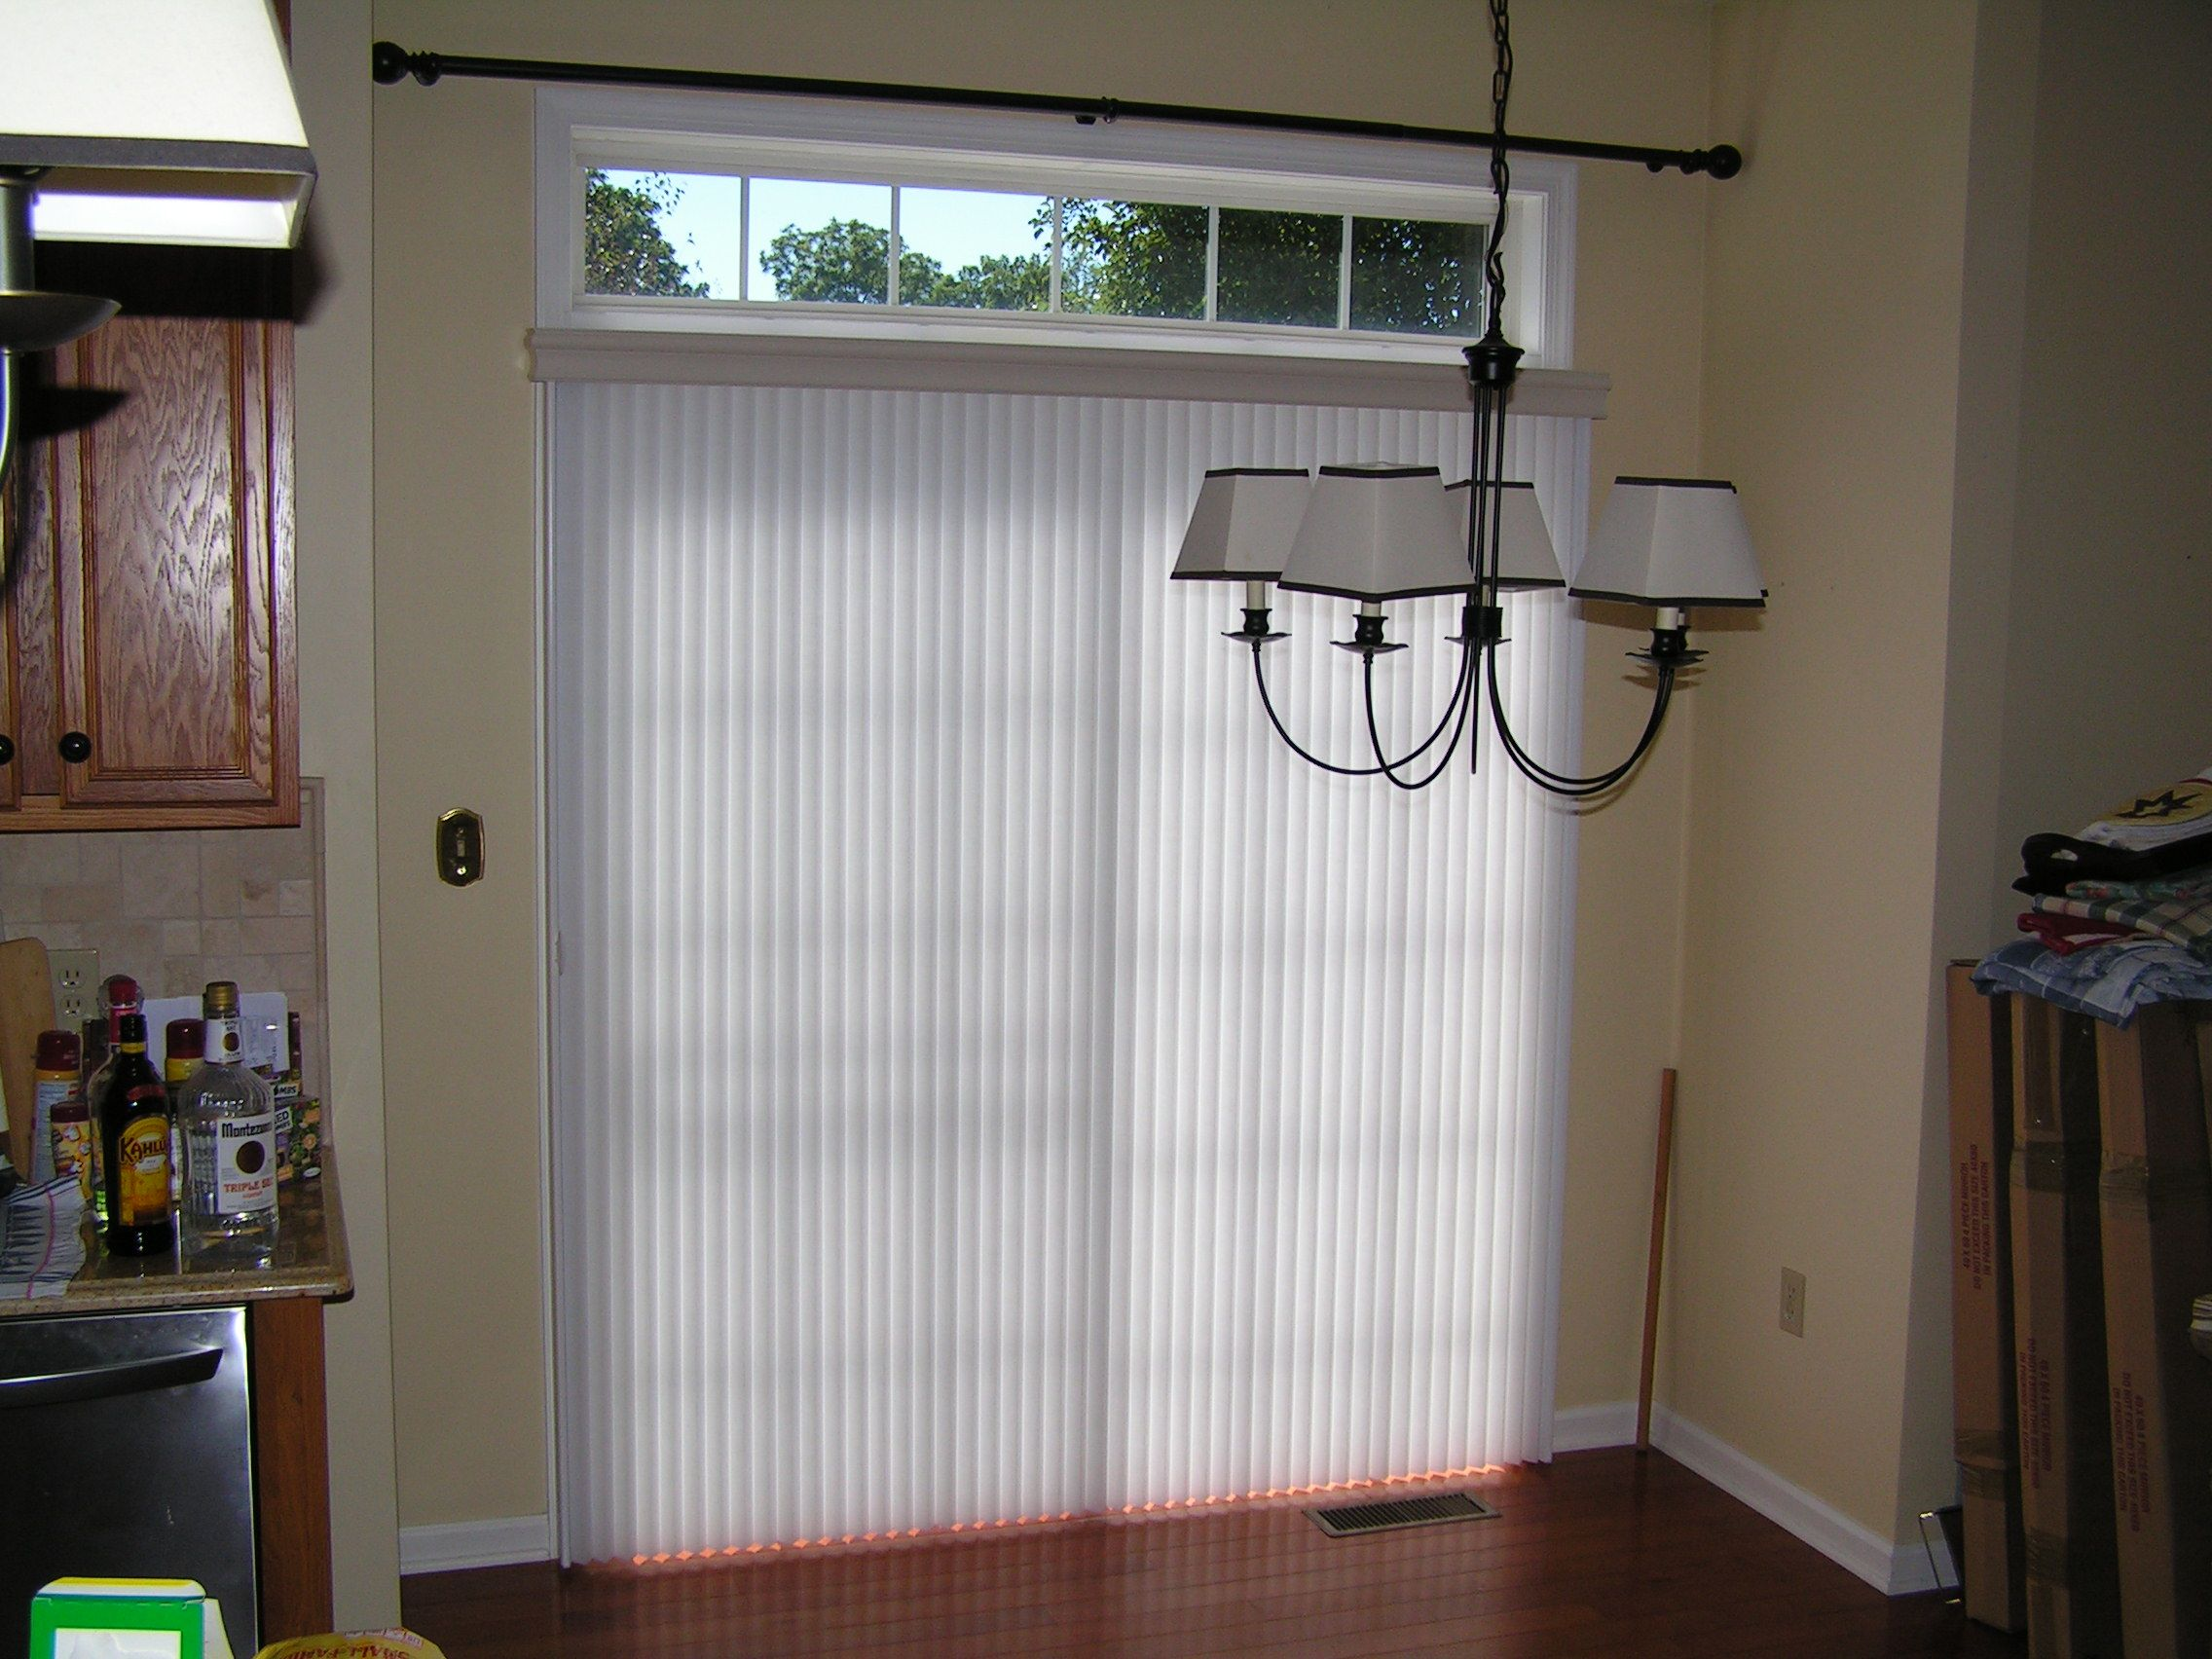 Vertiglide architella duette honeycomb shade in dazzling white for a